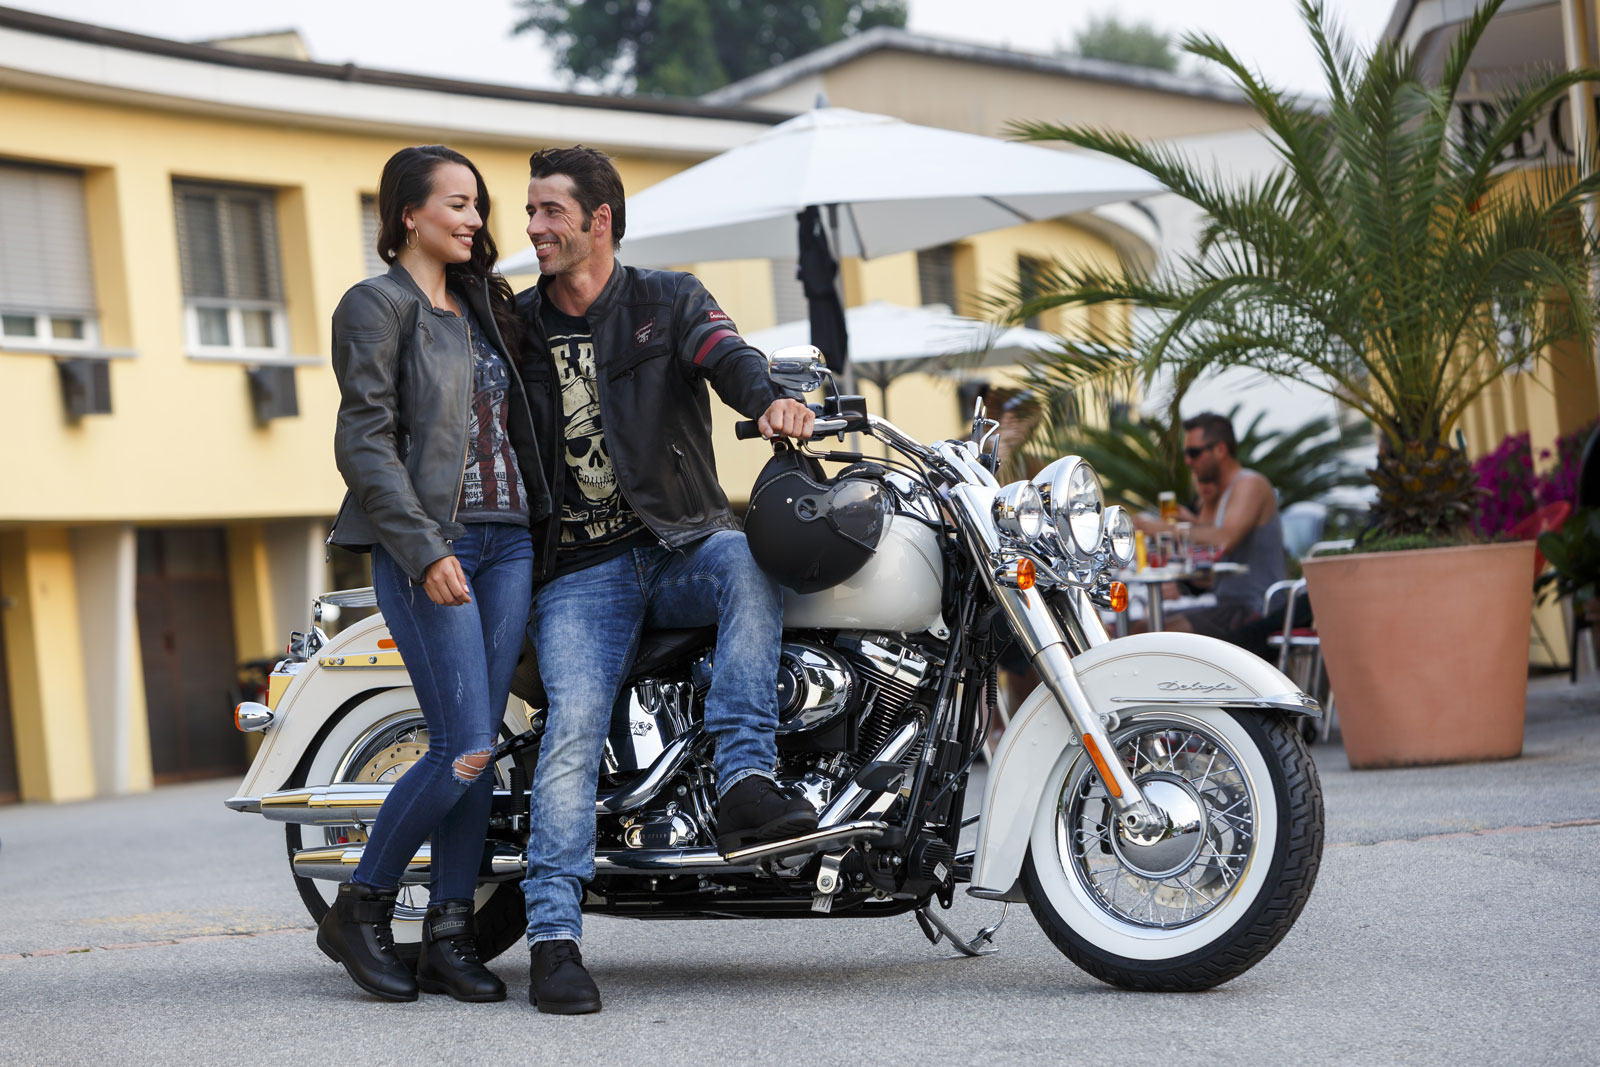 images/offers/bikers/category-bikers.jpg